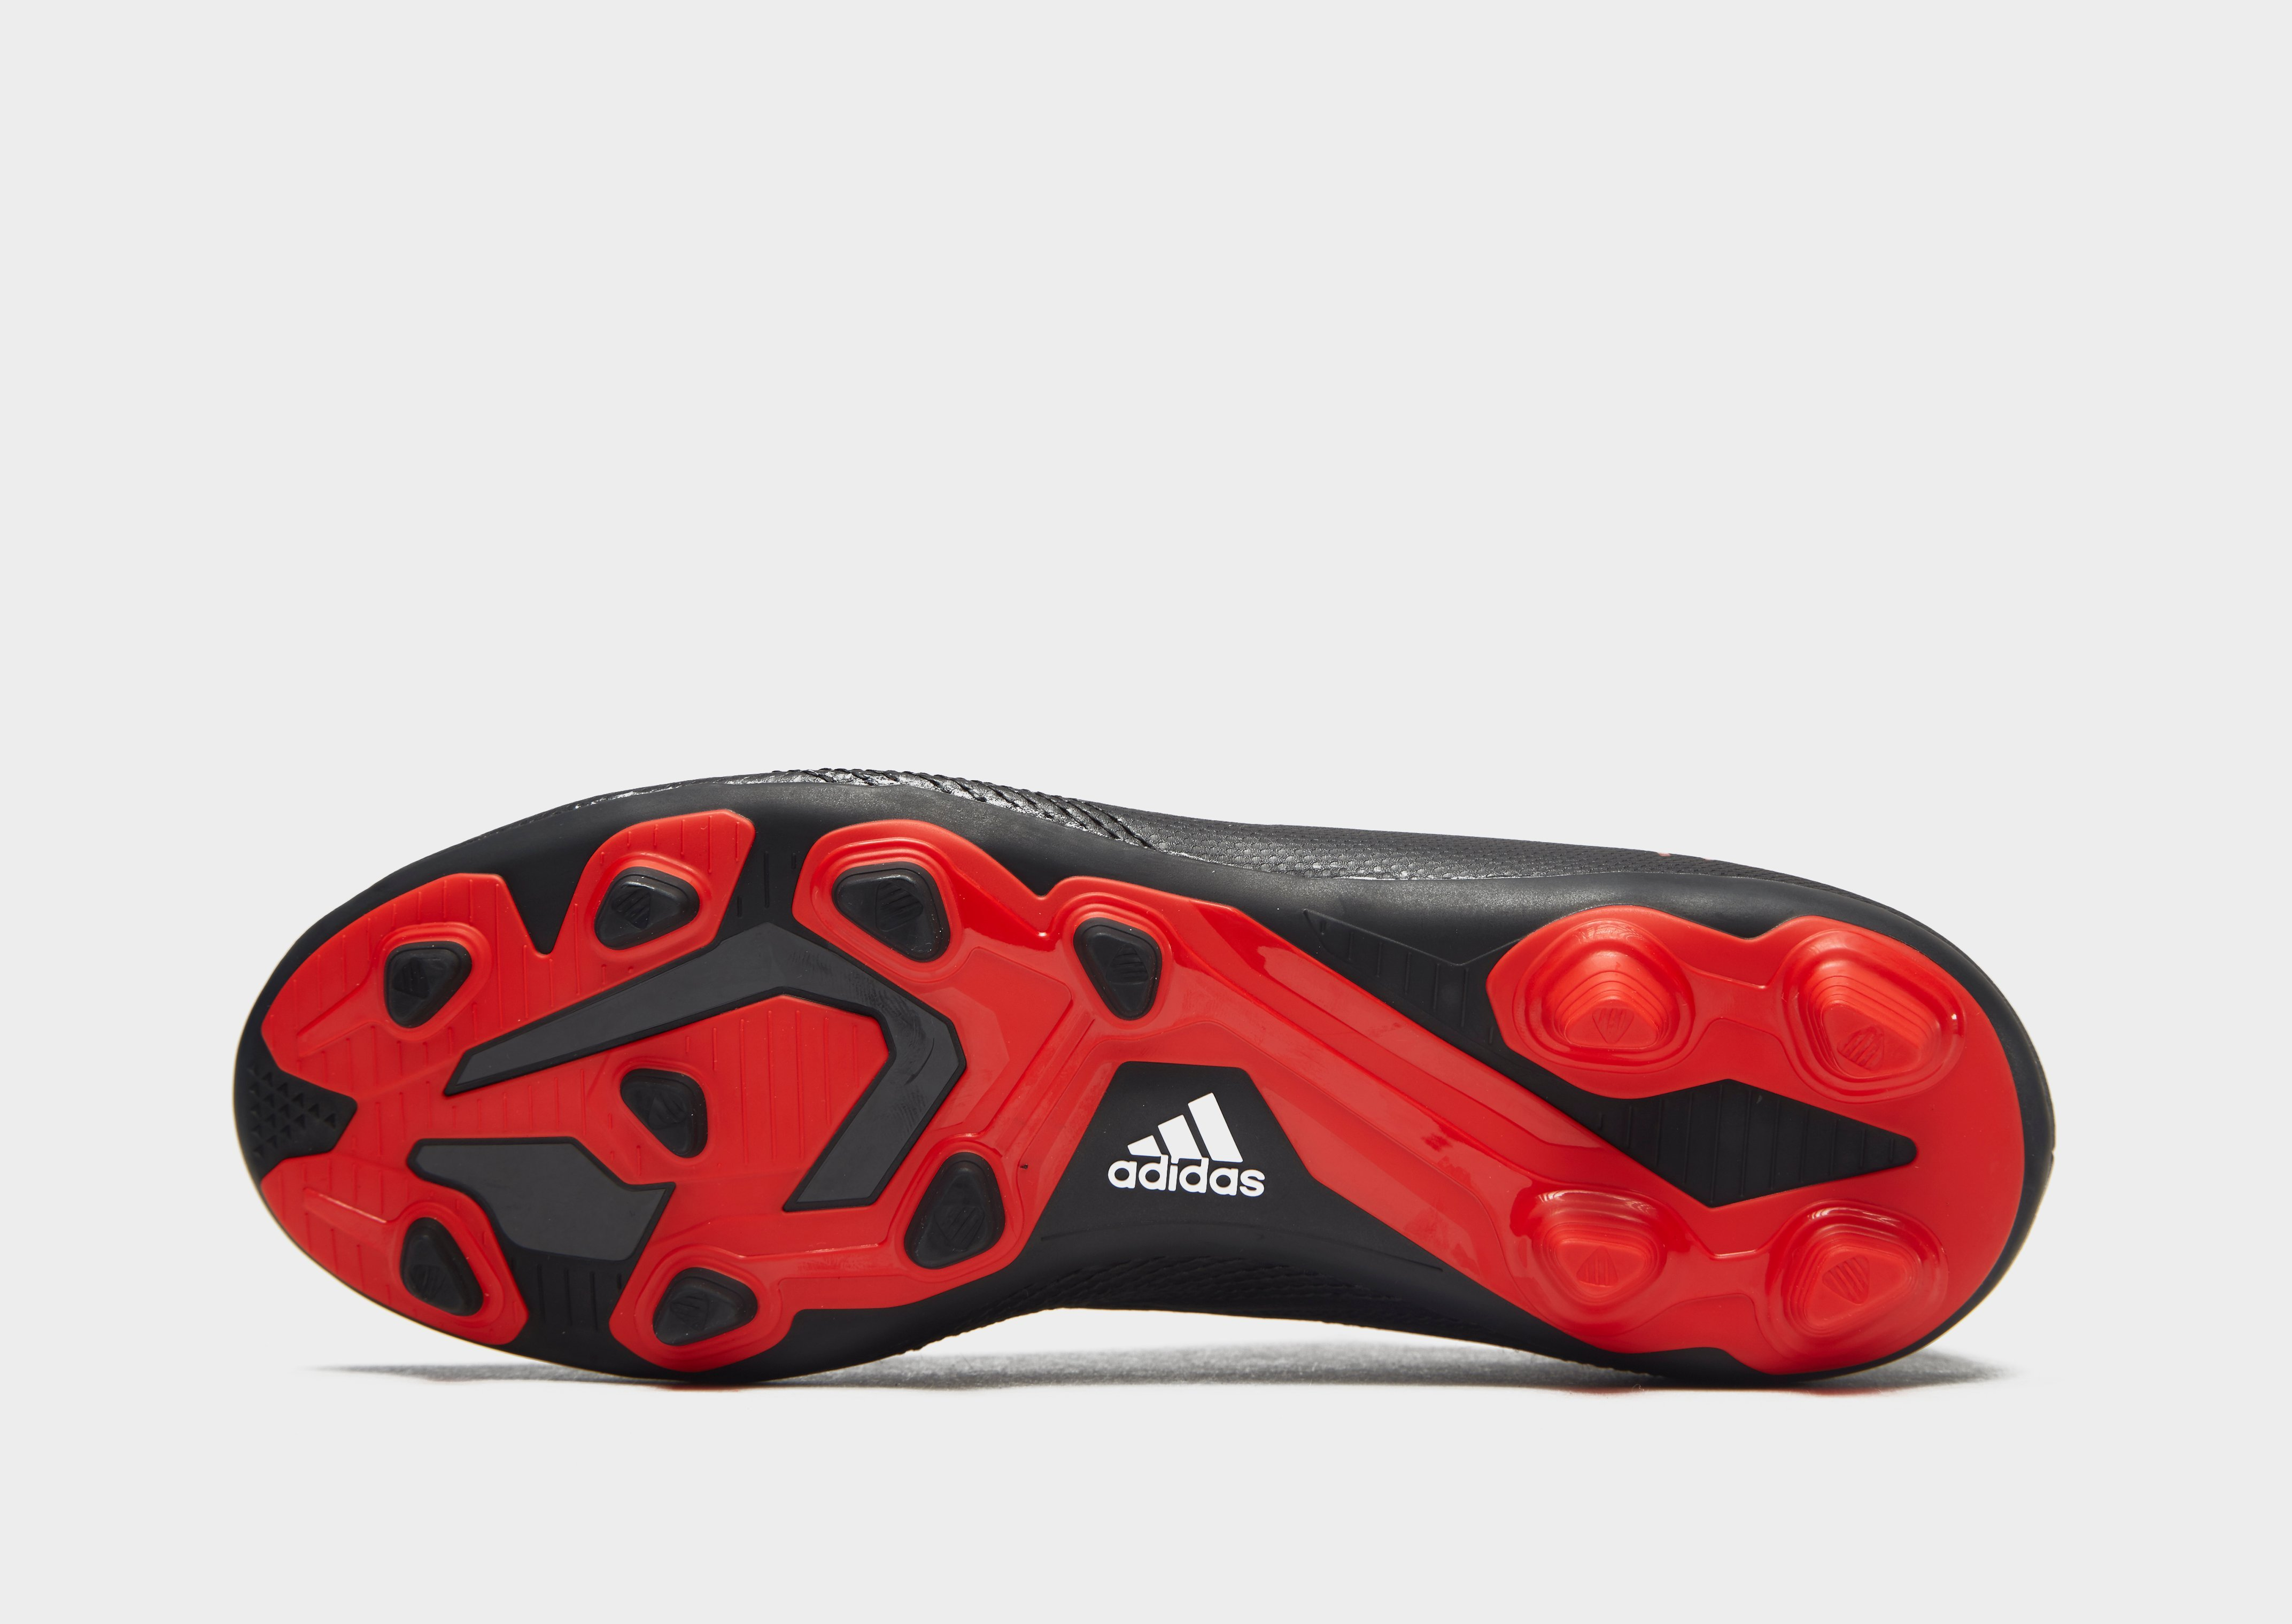 adidas Team Mode Predator 18.4 FG Junior